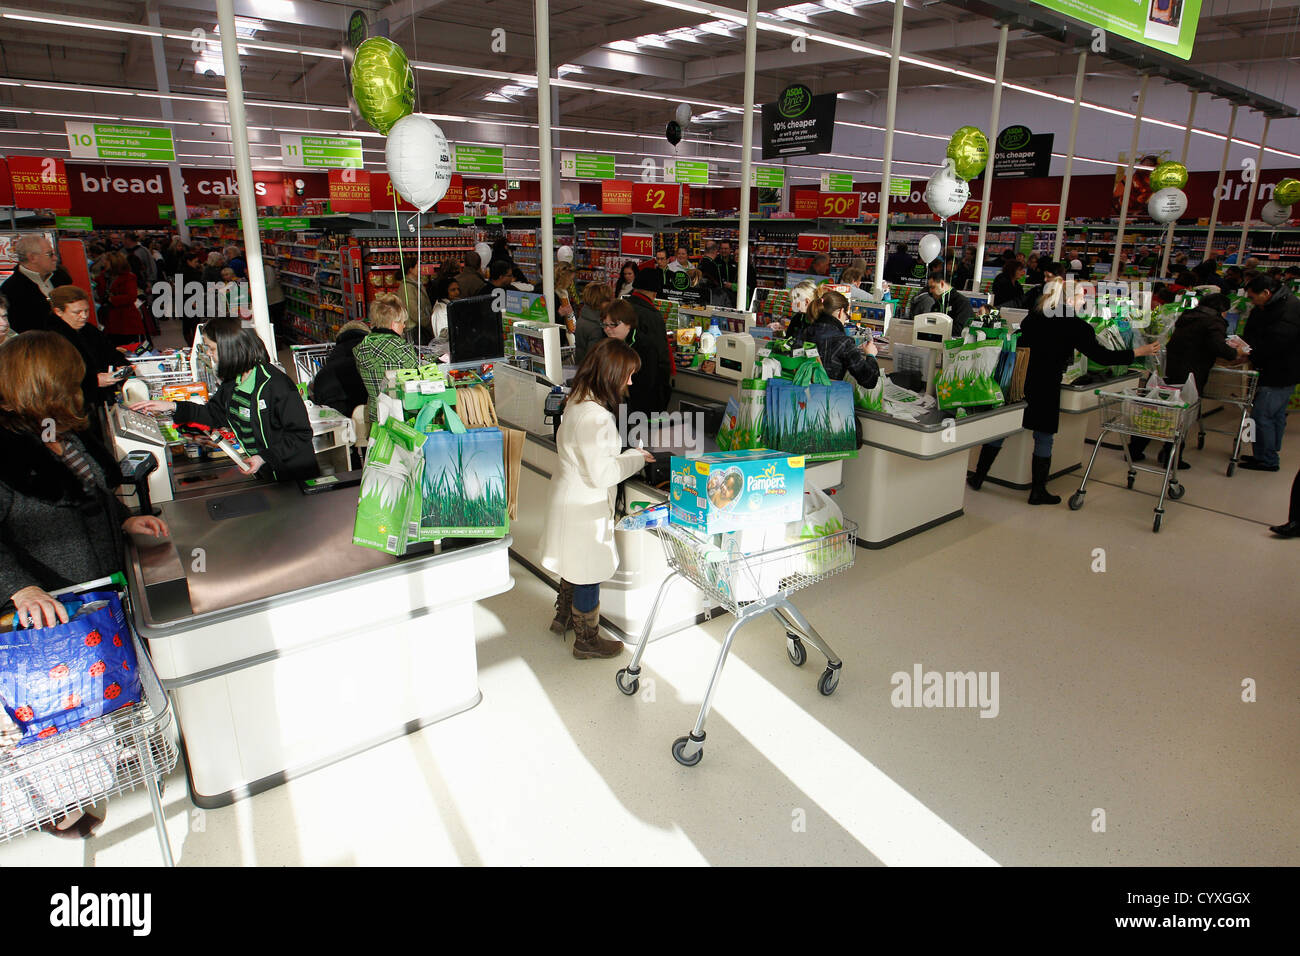 Busy check outs with queueing customers British Isles Great Britain Northern Europe Shop Shops Shoppers Mall Retail - Stock Image